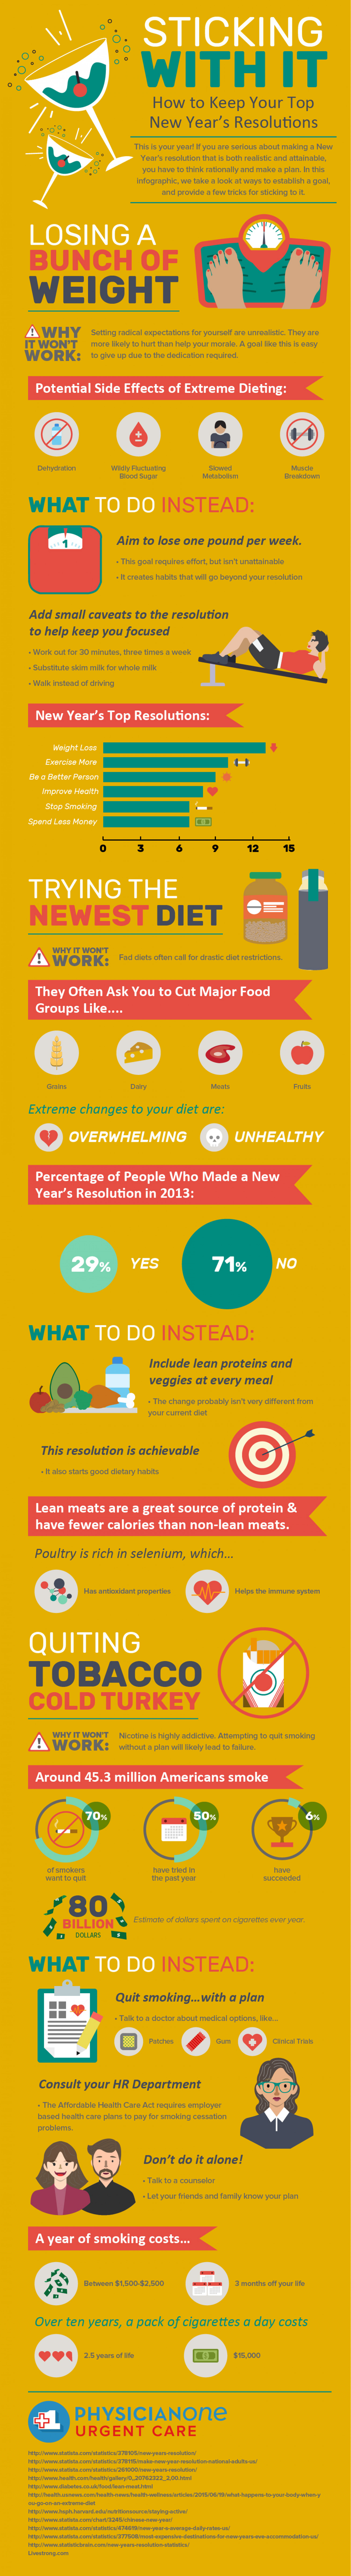 Sticking With It Infographic